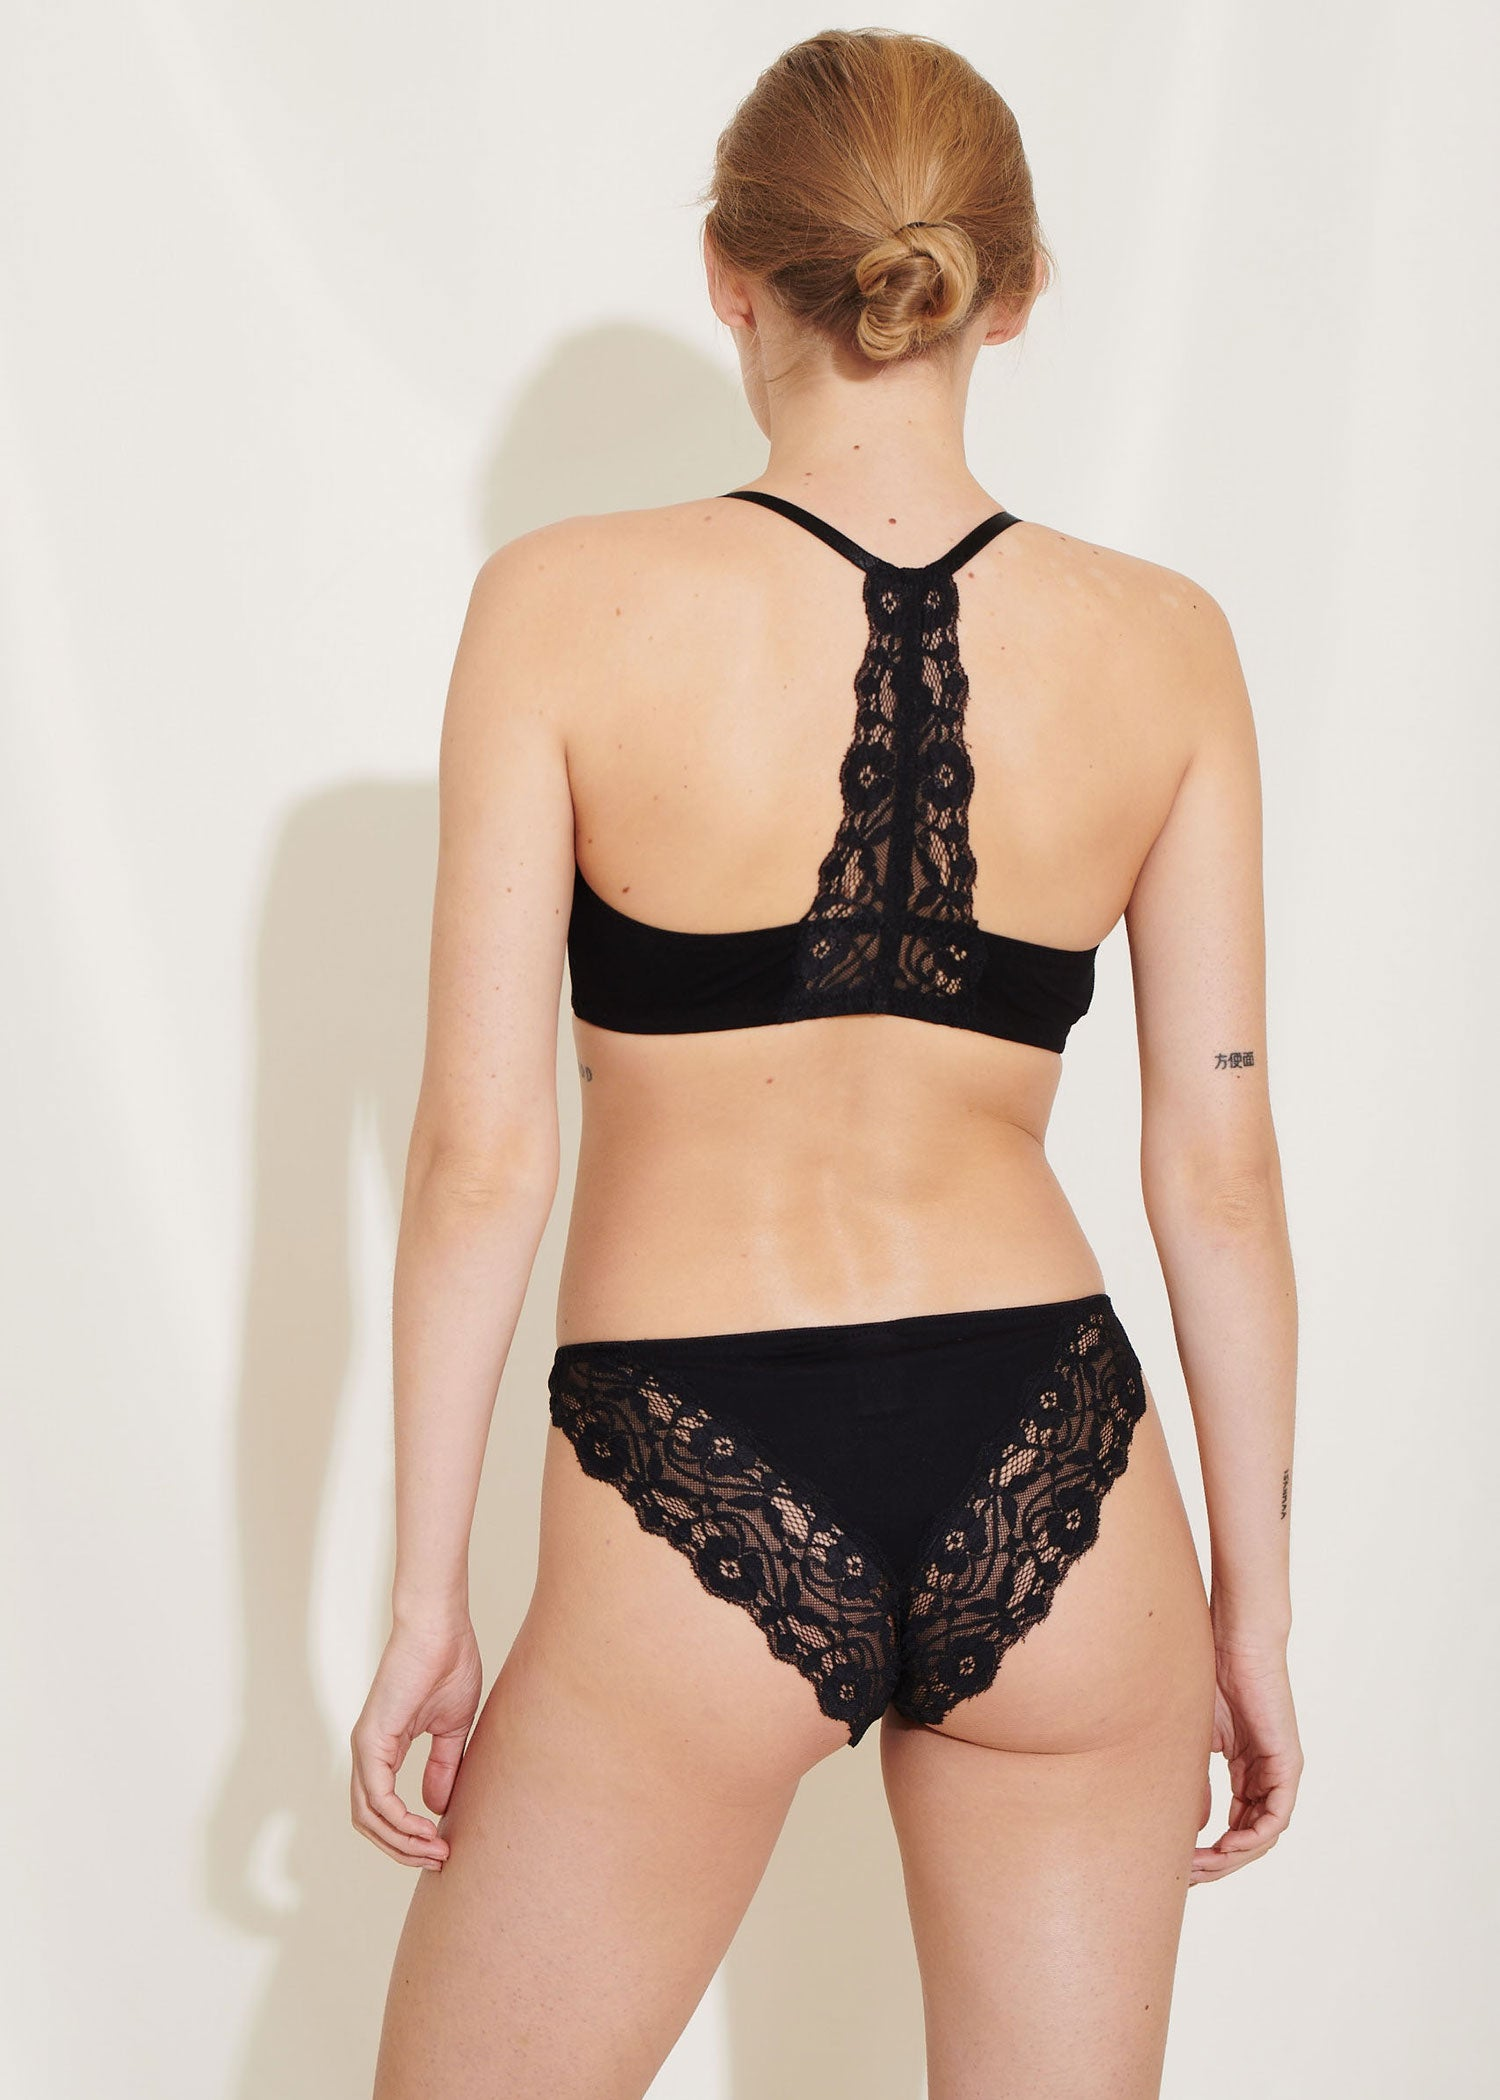 b44fc0d6a8fb Underprotection: Sustainable underwear, loungewear and swimwear